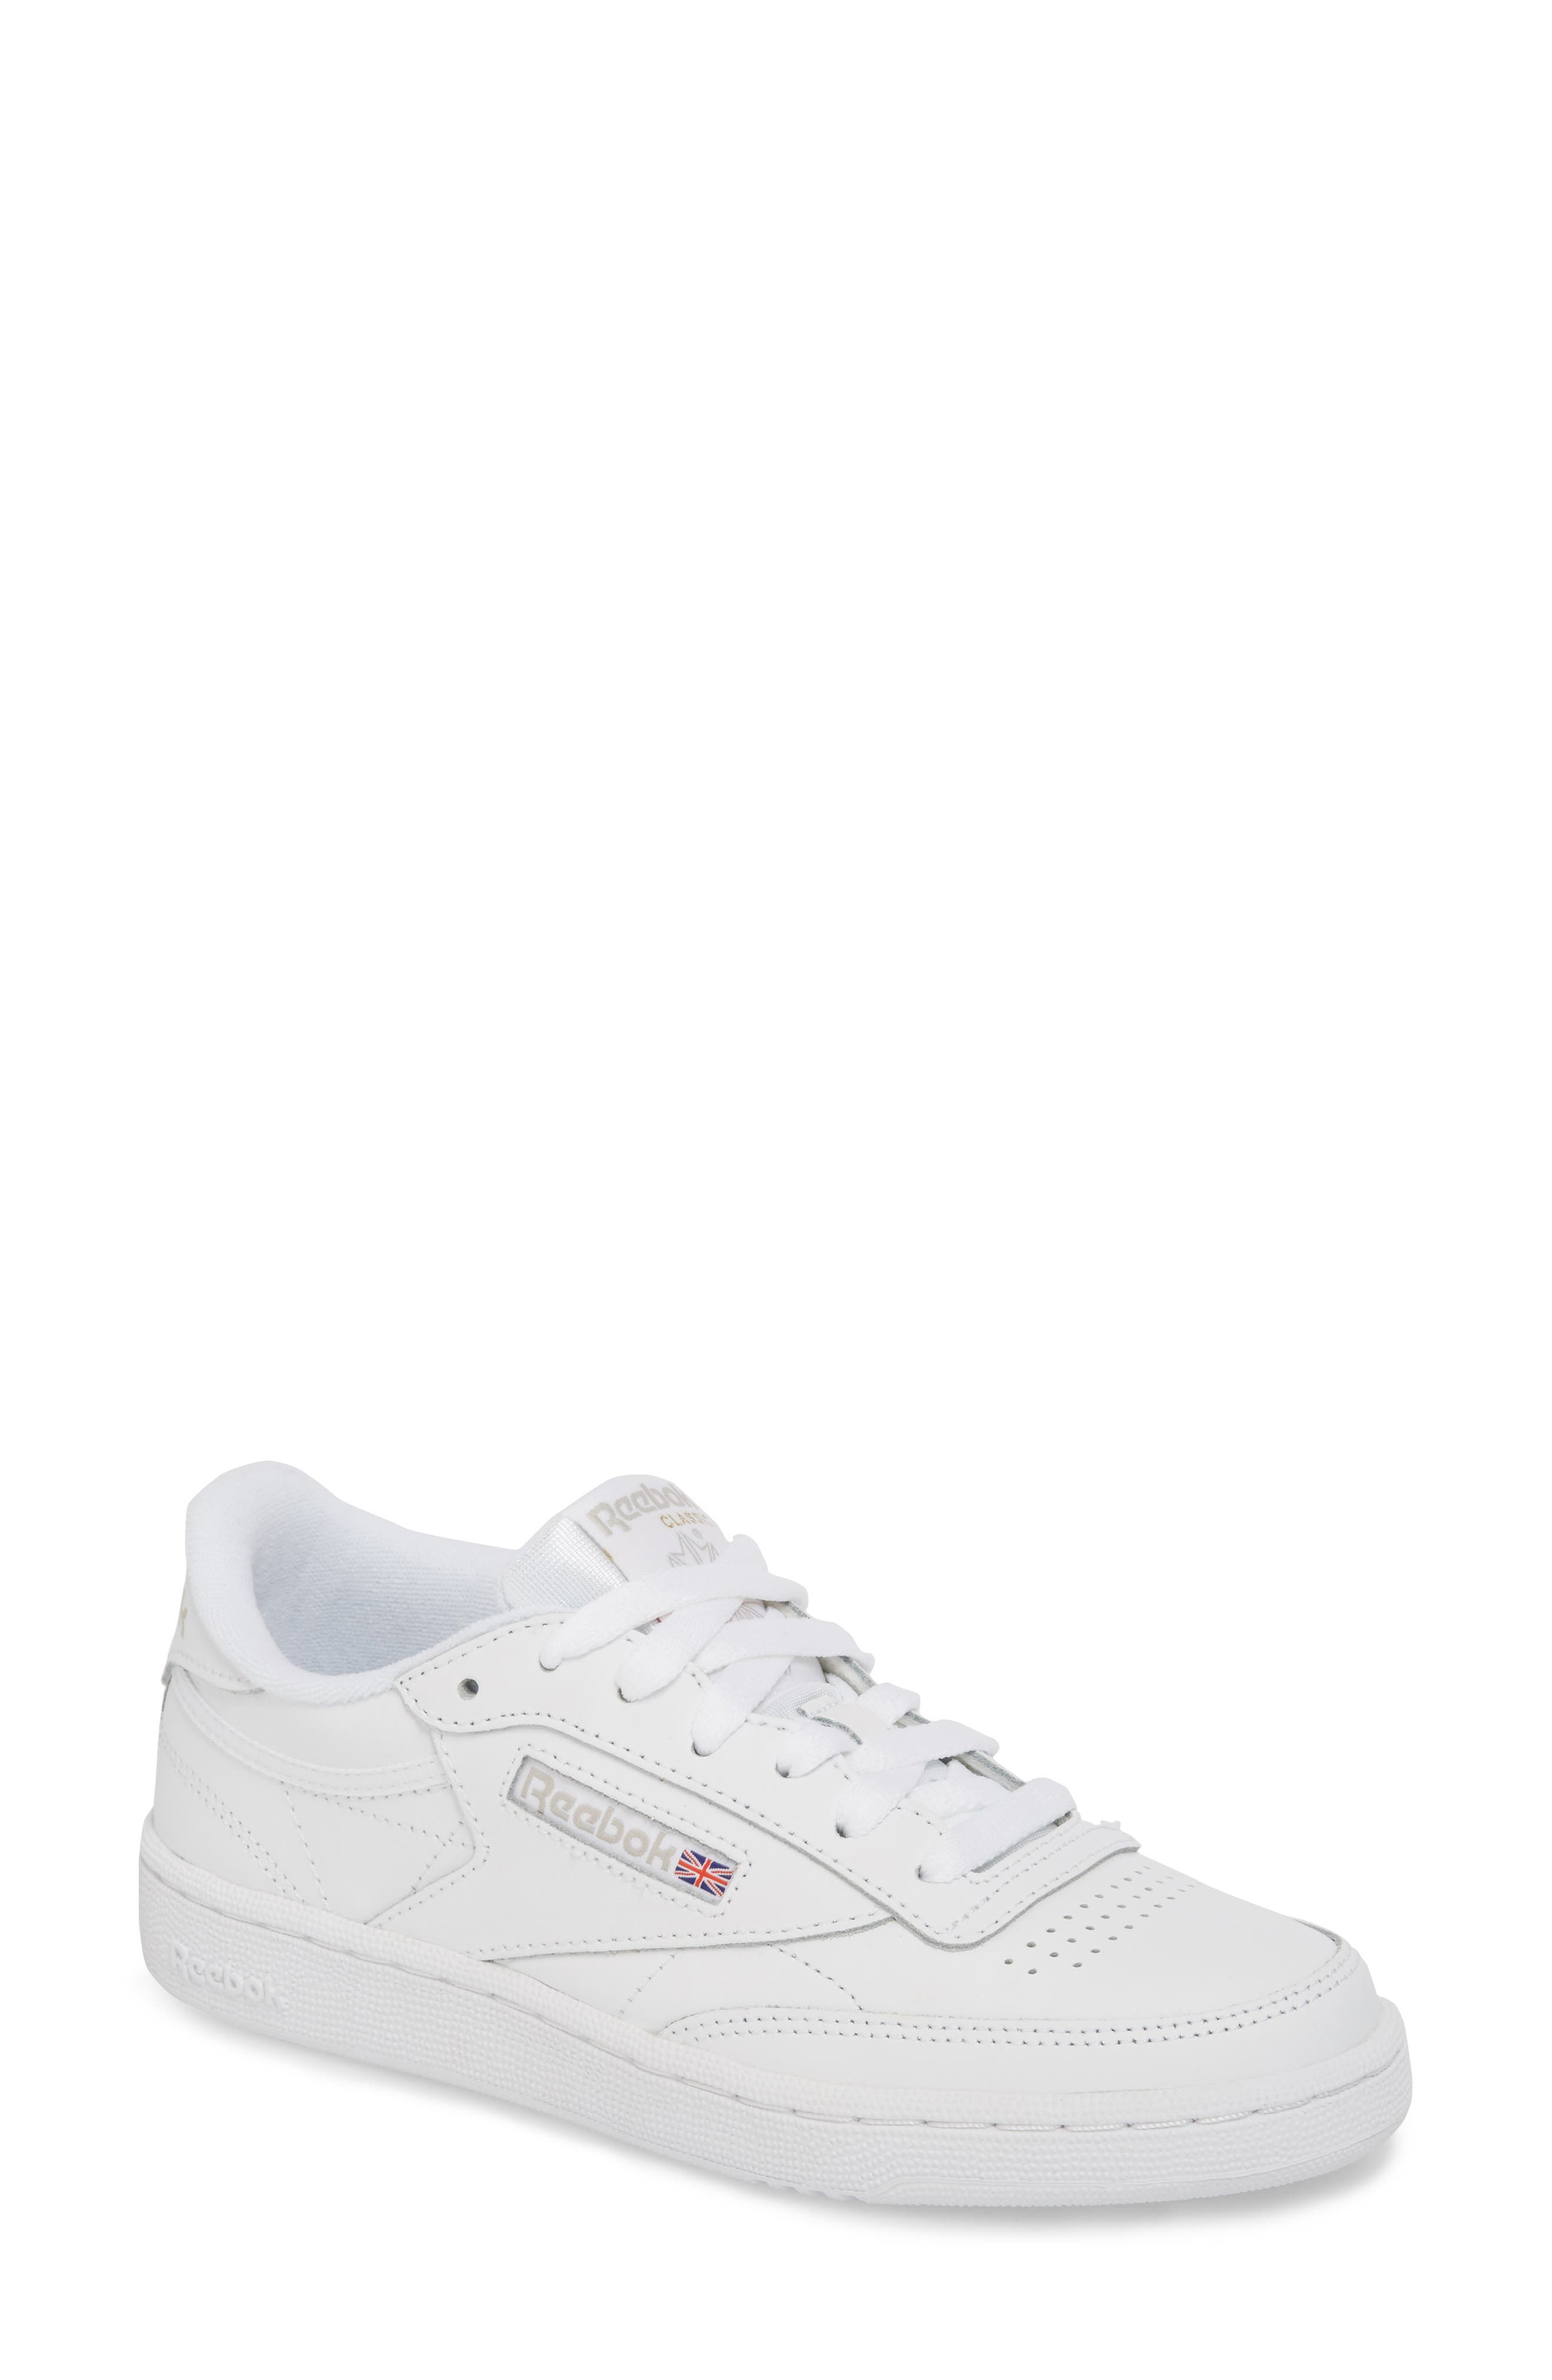 Club C 85 Sneaker,                         Main,                         color, White/ Light Grey